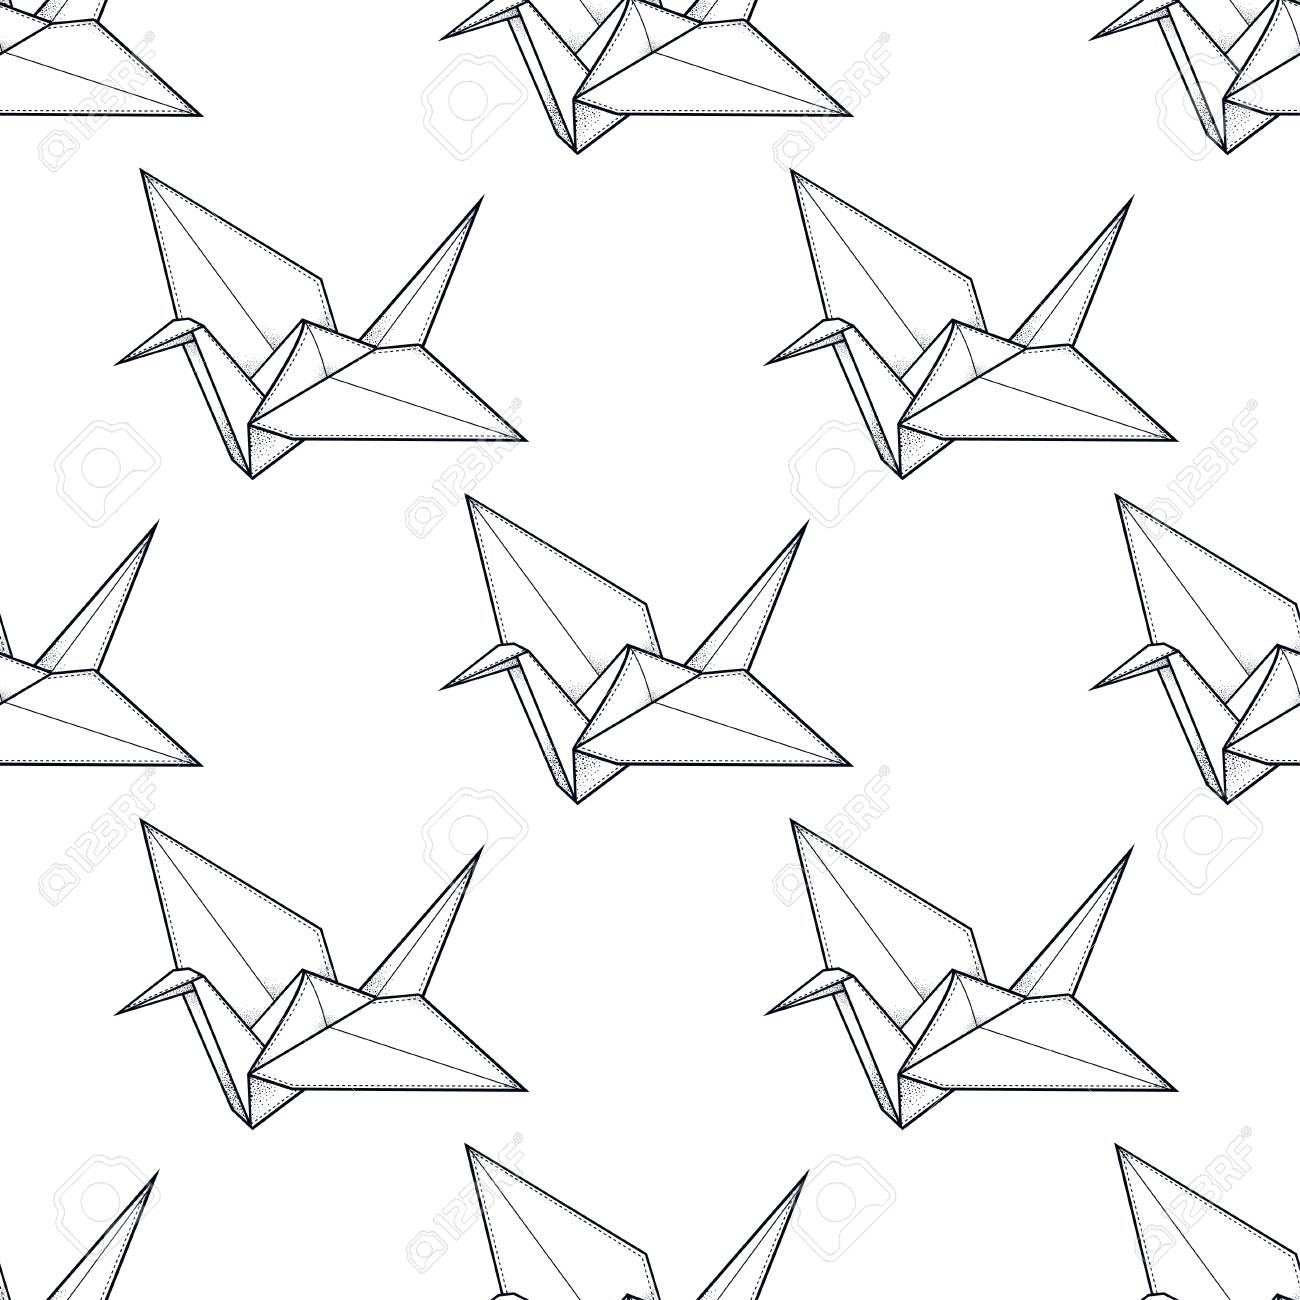 1300x1300 Origami Crane Vector Seamless Pattern. Endless Texture Can Be